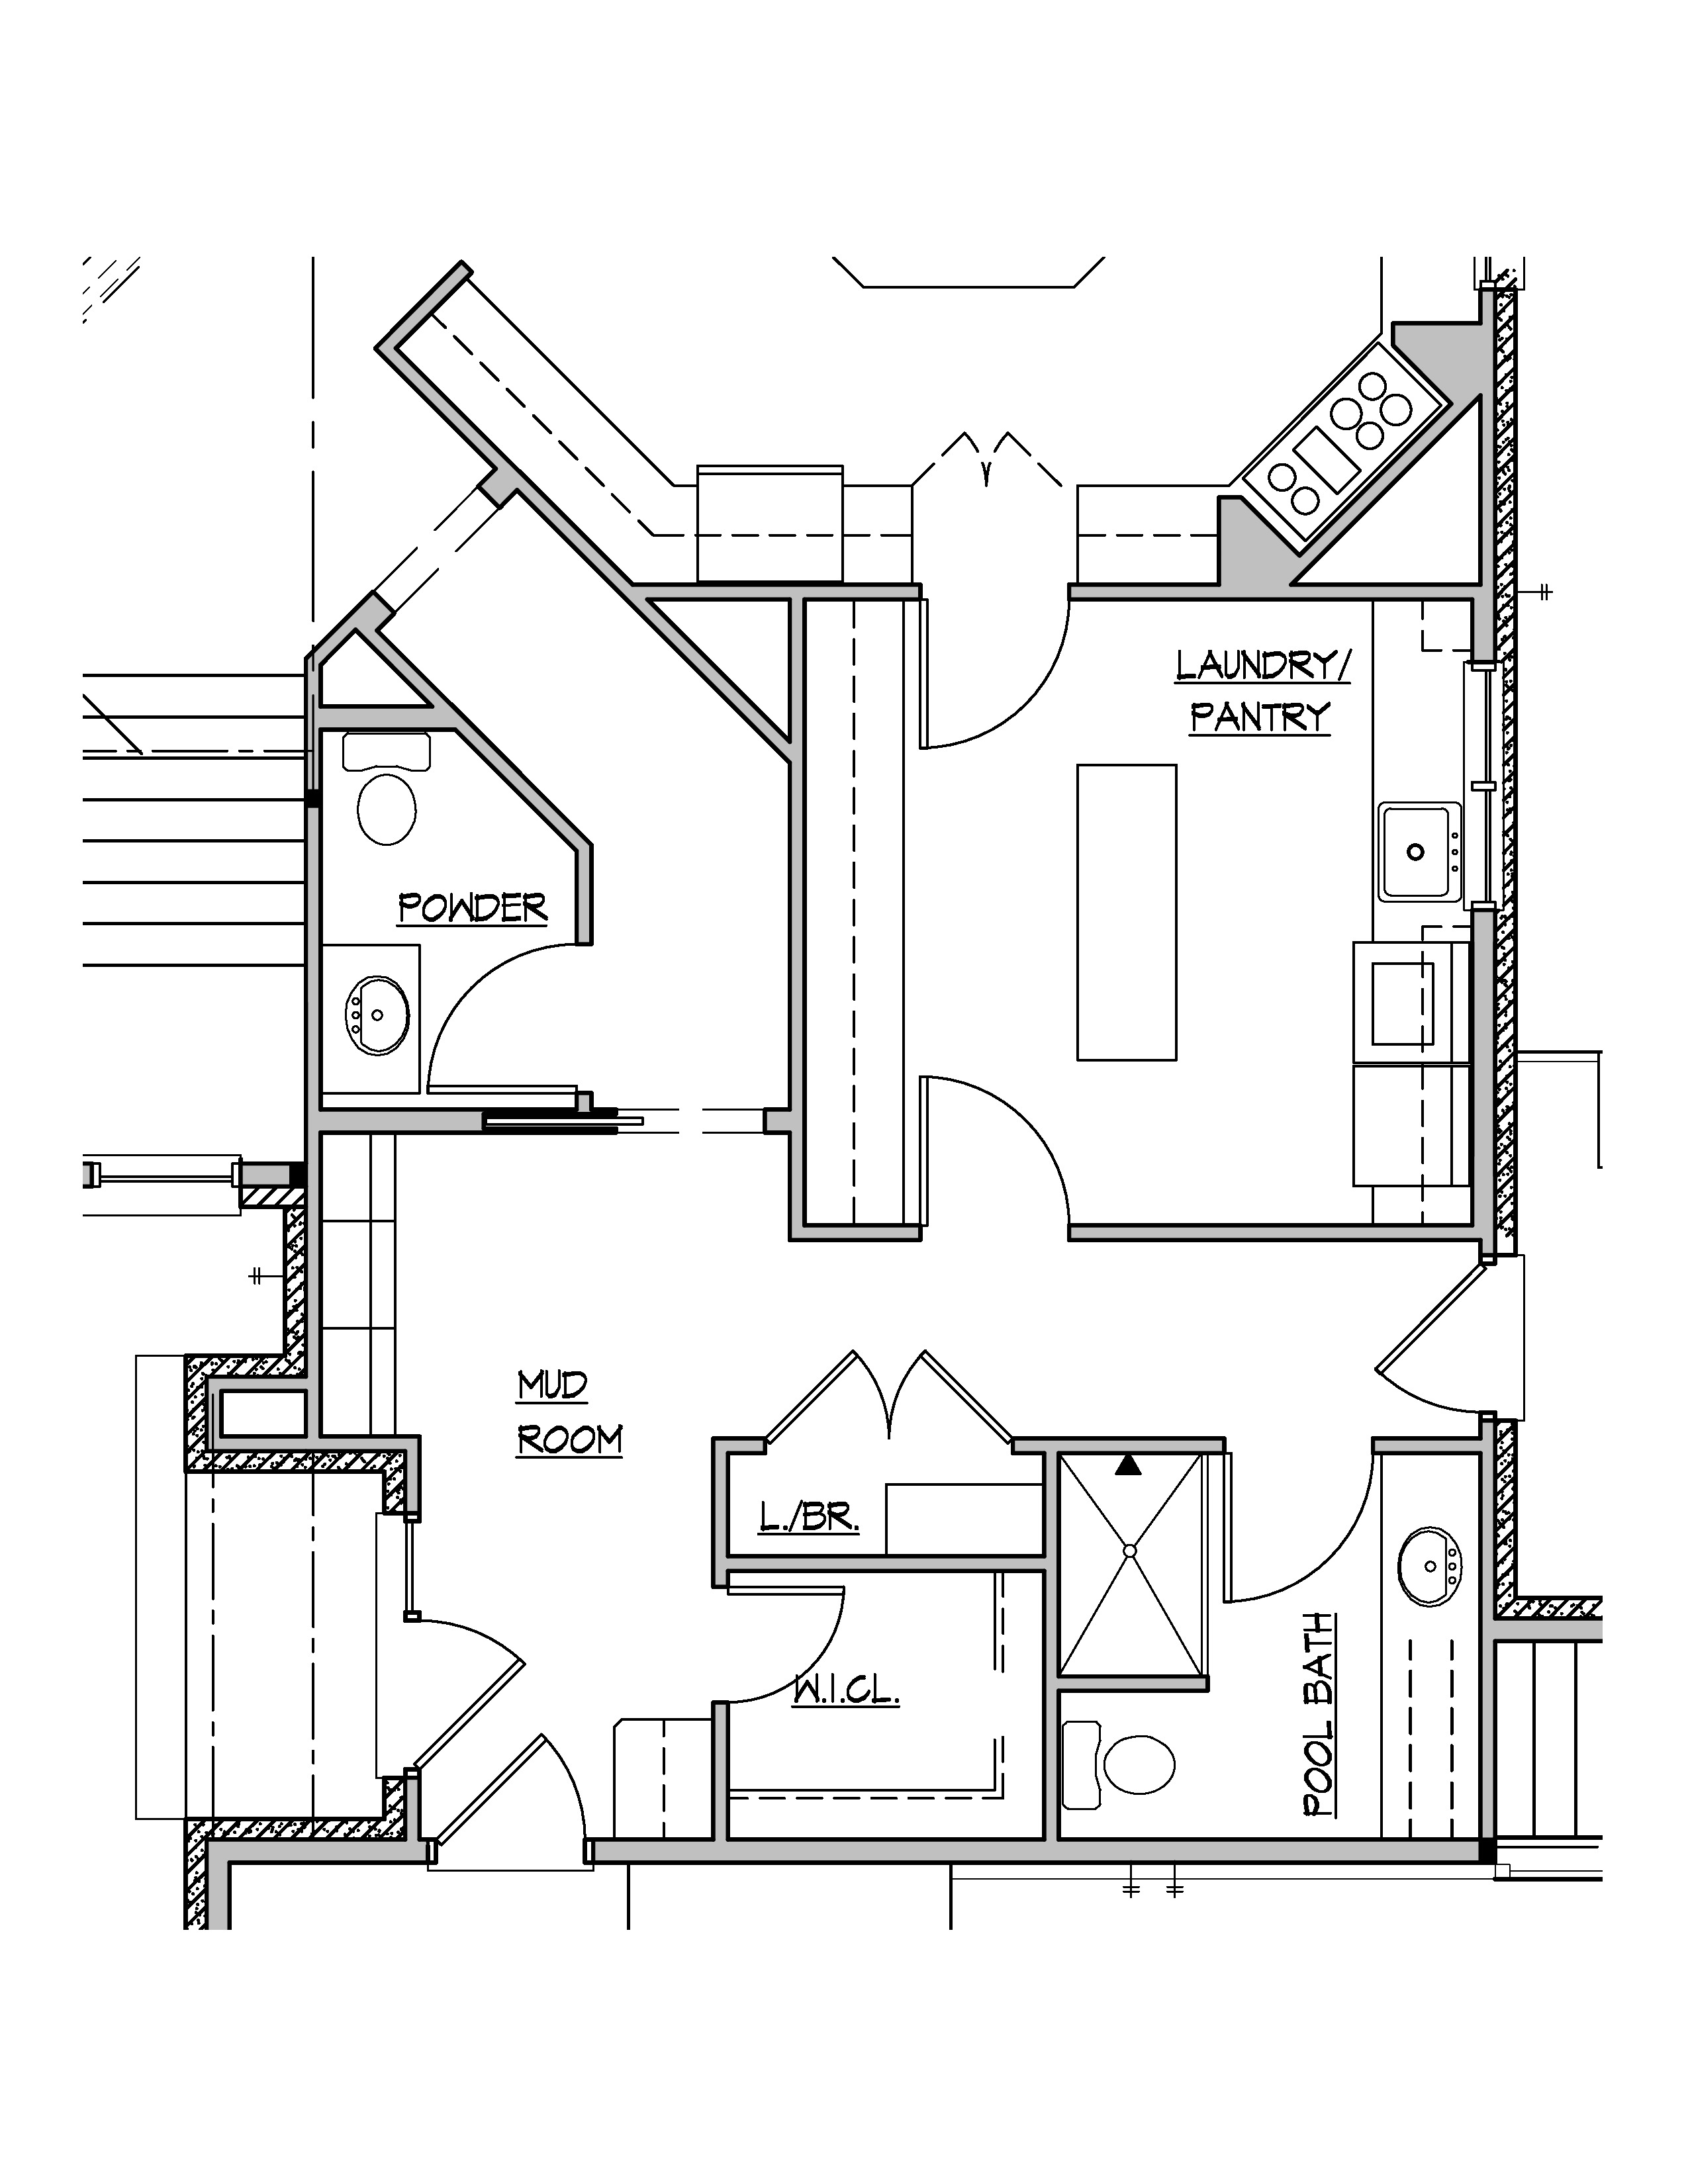 Easy Architectural Drawing At Getdrawings